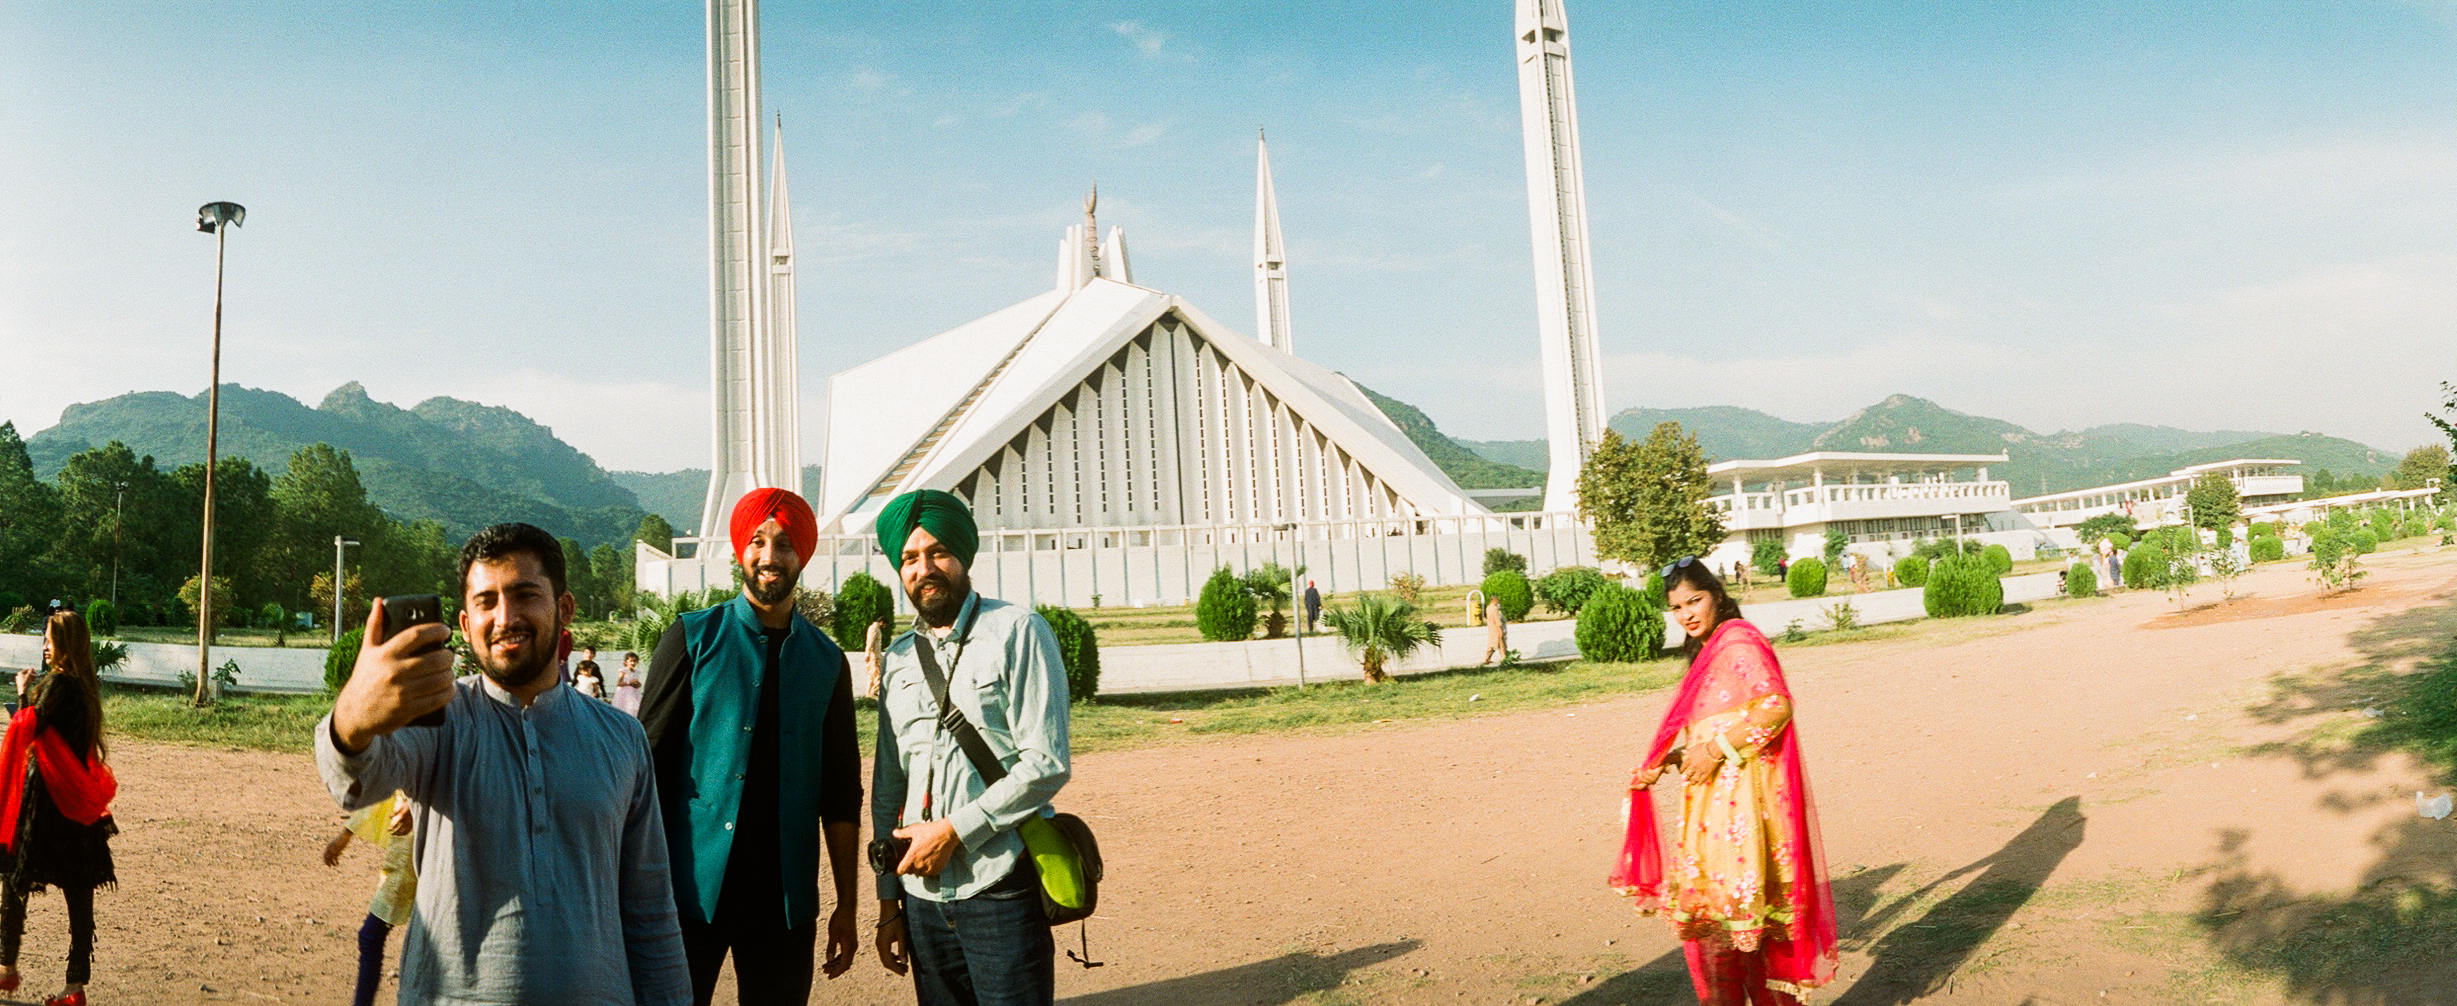 Selfies_with_Amrinder Singh and Inderjit Singh at Faisal Mosque Islamabad Photo by AK Sandhu